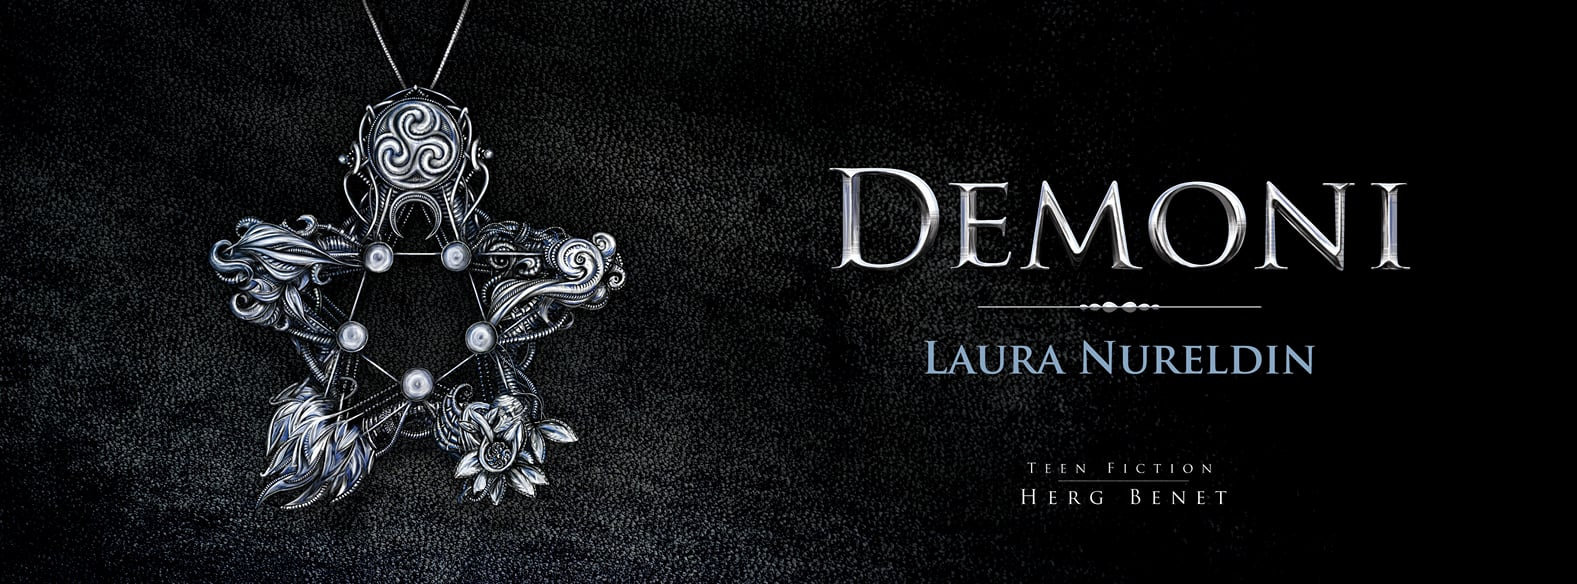 Demoni (vol 1) - Laura Nureldin